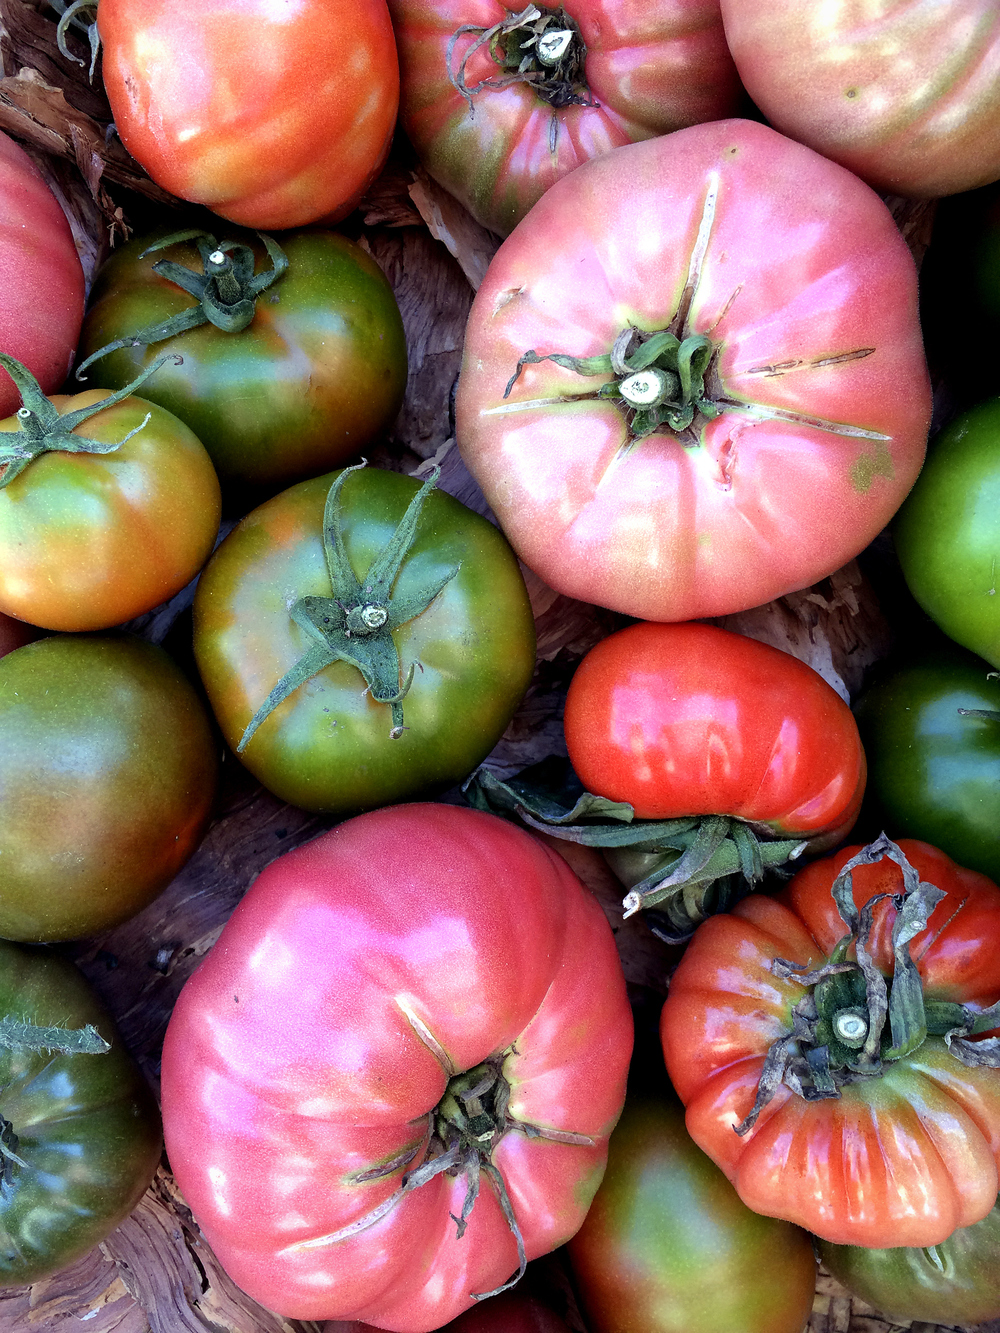 Greenmarket heirloom tomatoes